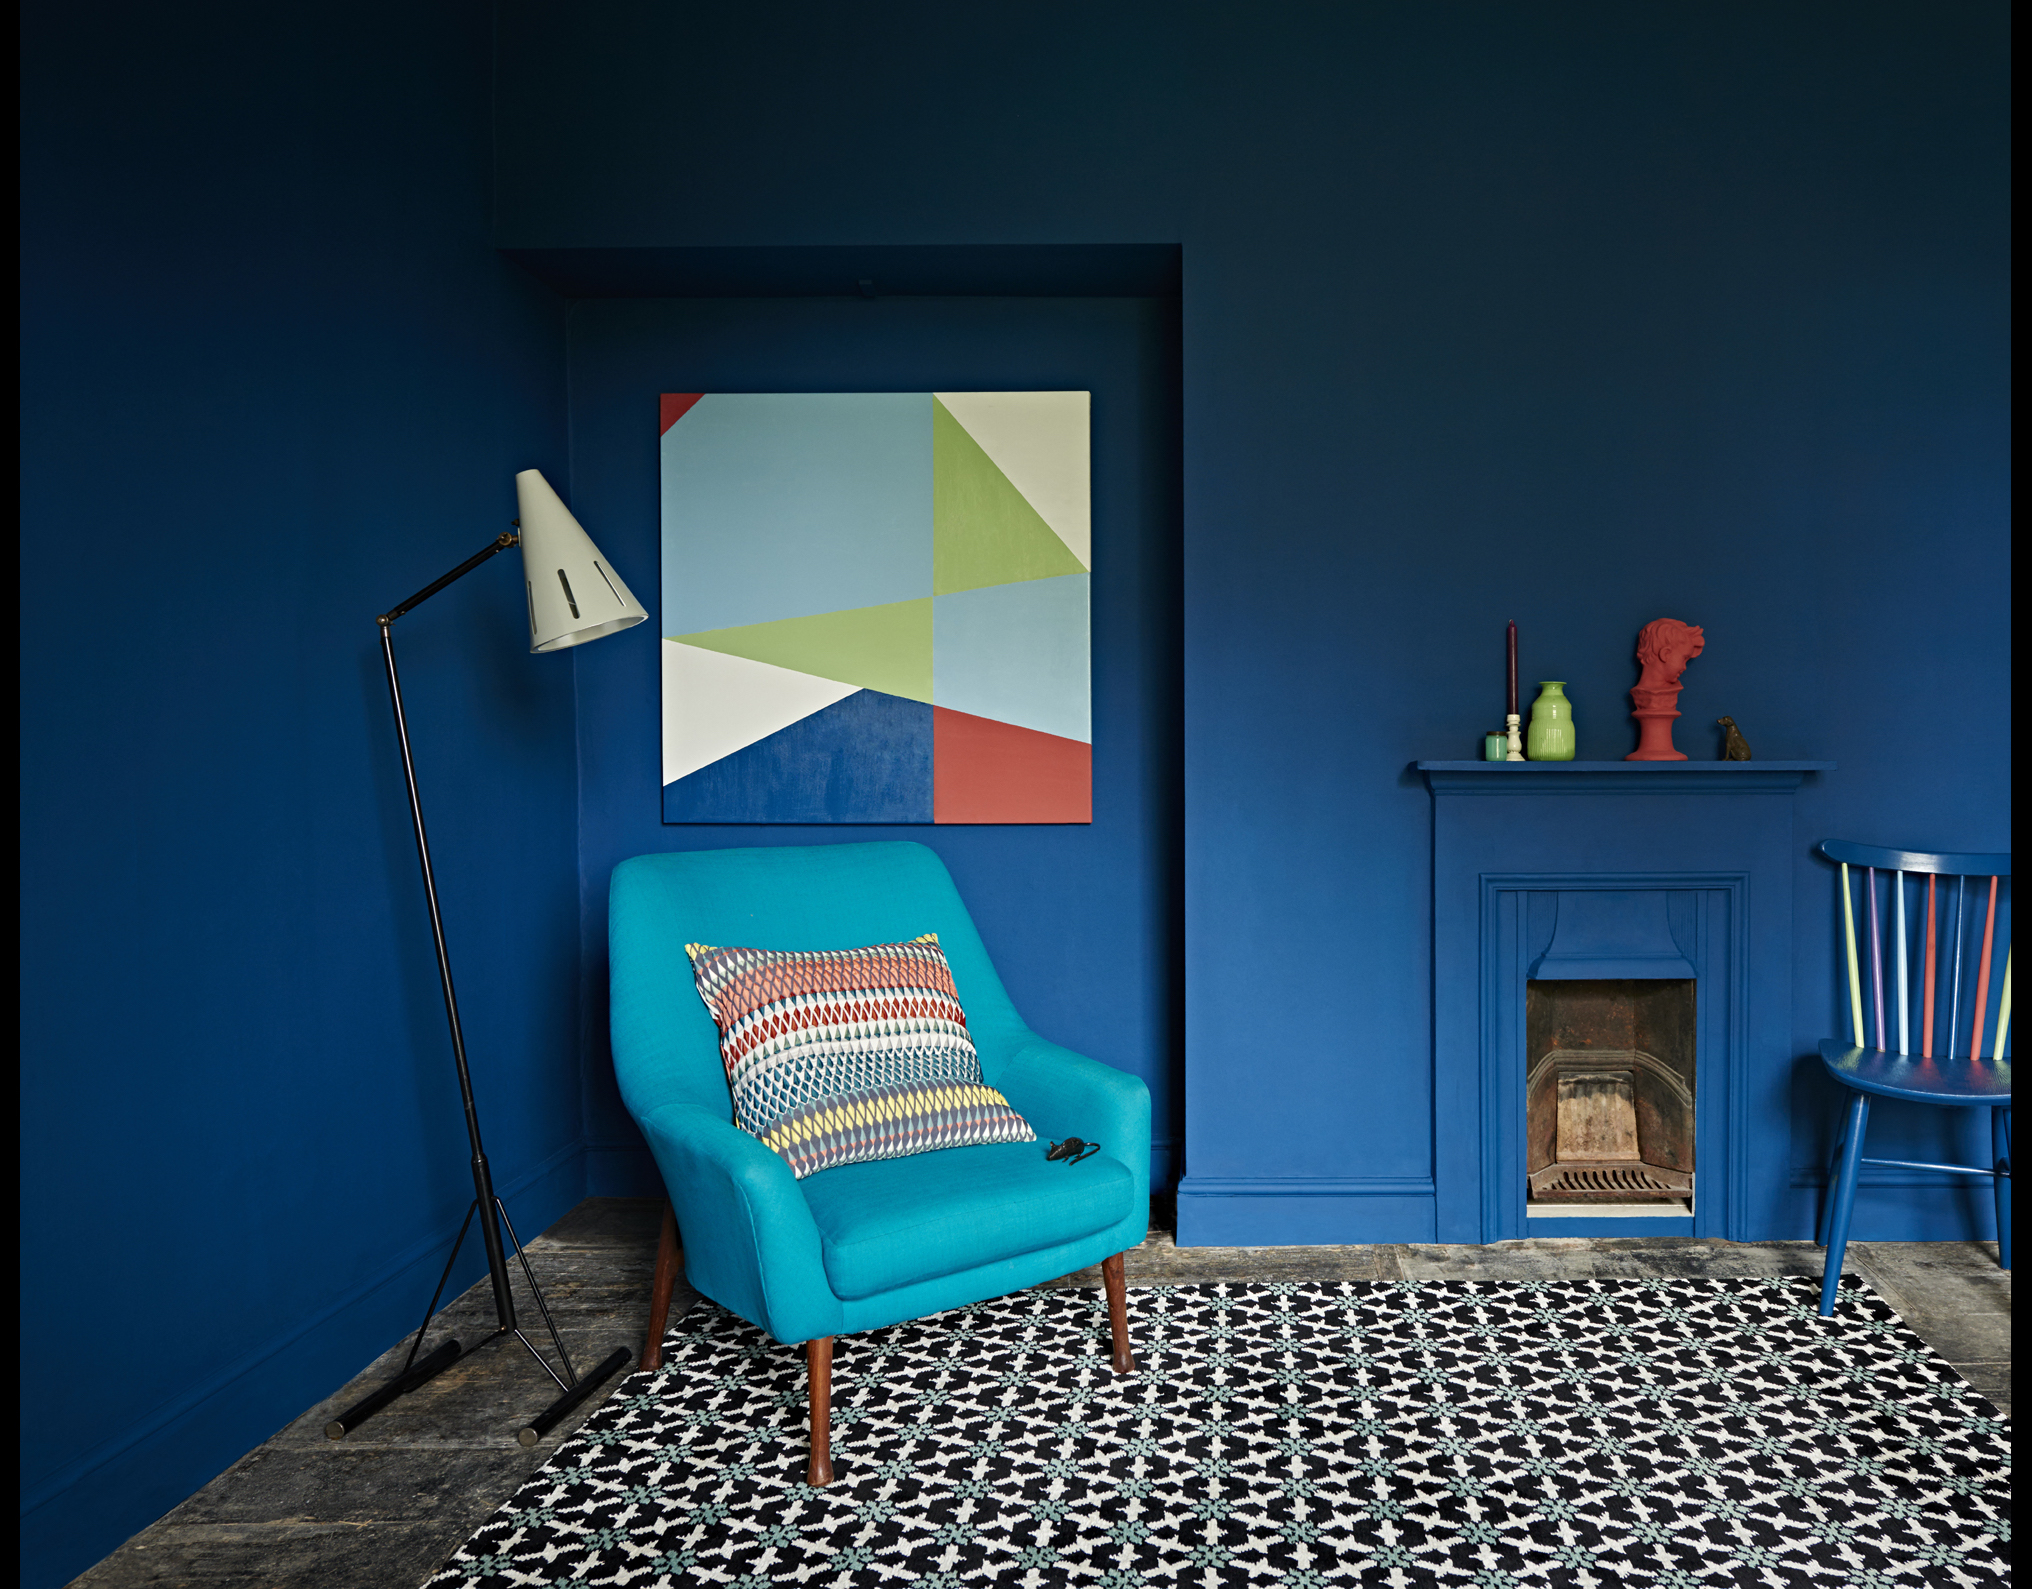 Sophie Robinson and Kate Watson Smyth discuss if designer paint is worth the money. this blue living room with geometric floor and deep blue walls is by Eco paint brand Earth born